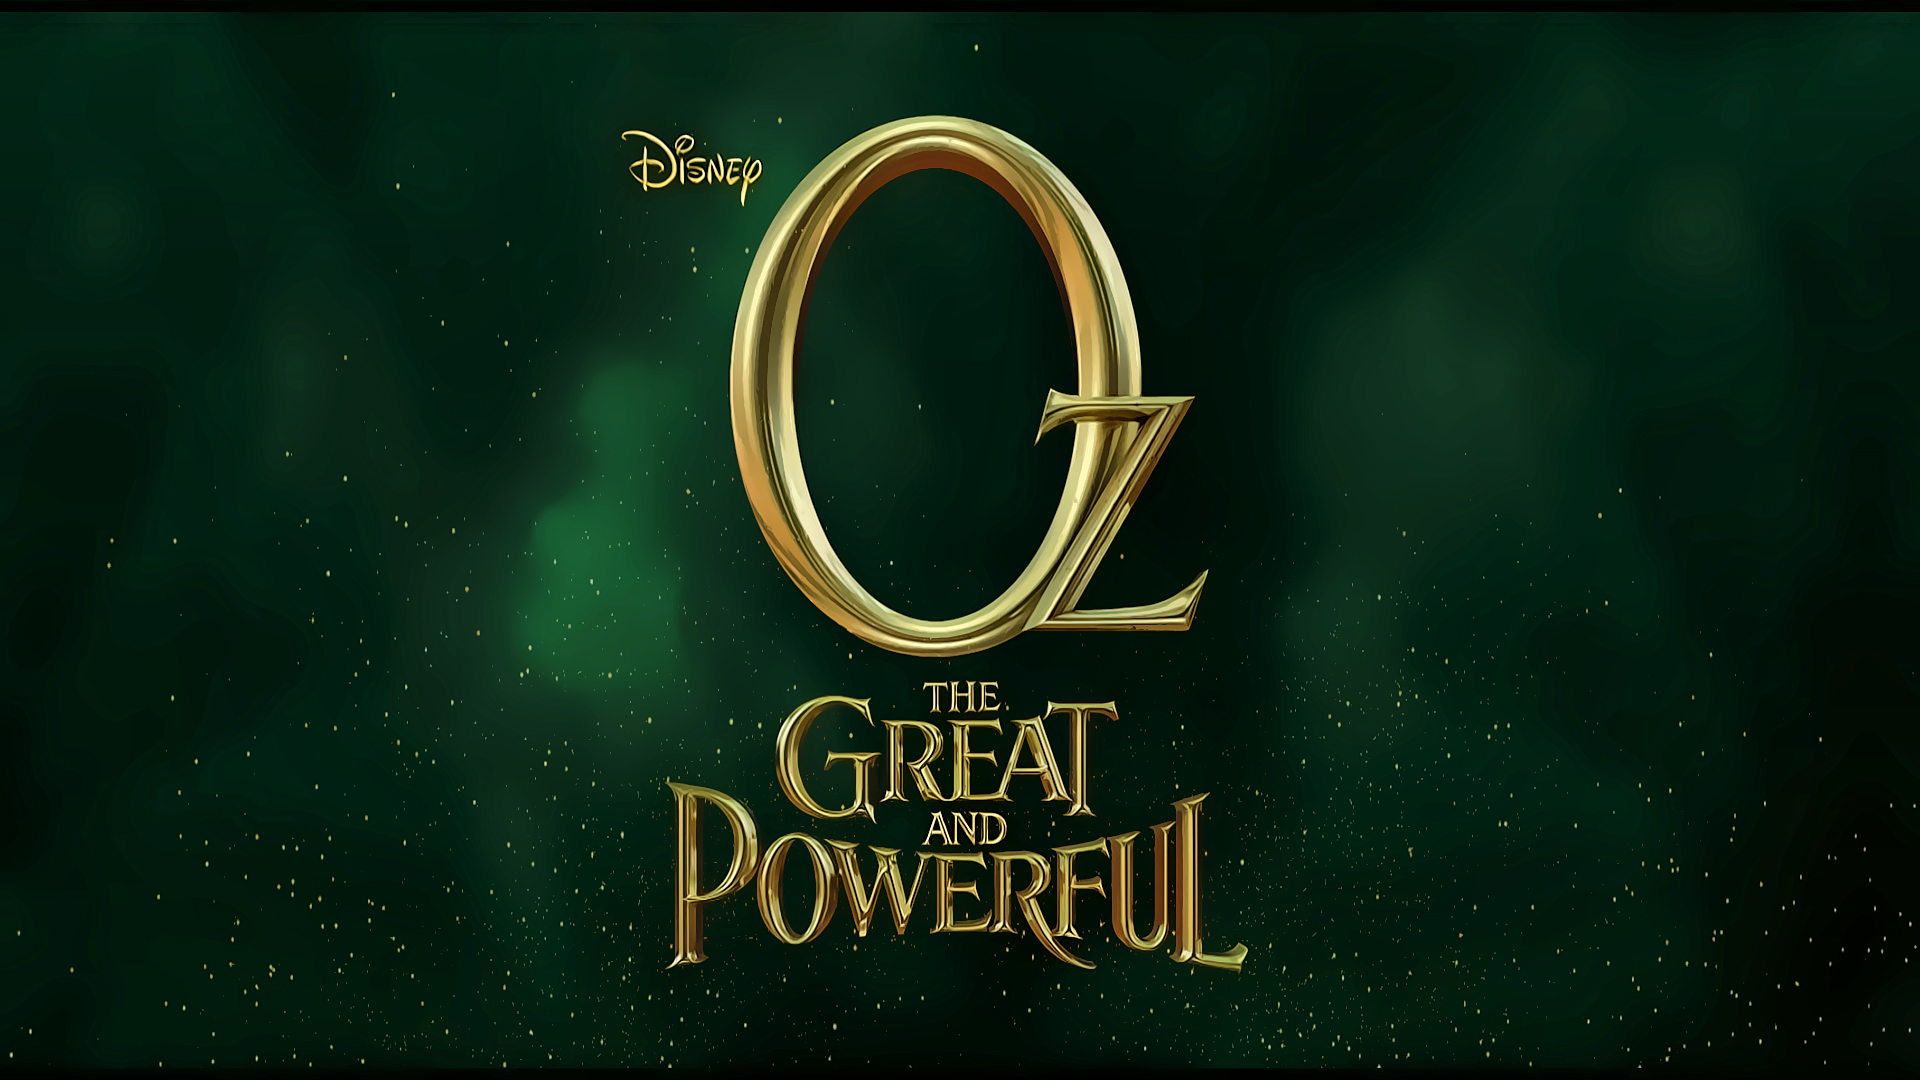 ws_Oz_The_Great_And_Powerful_1920x1080